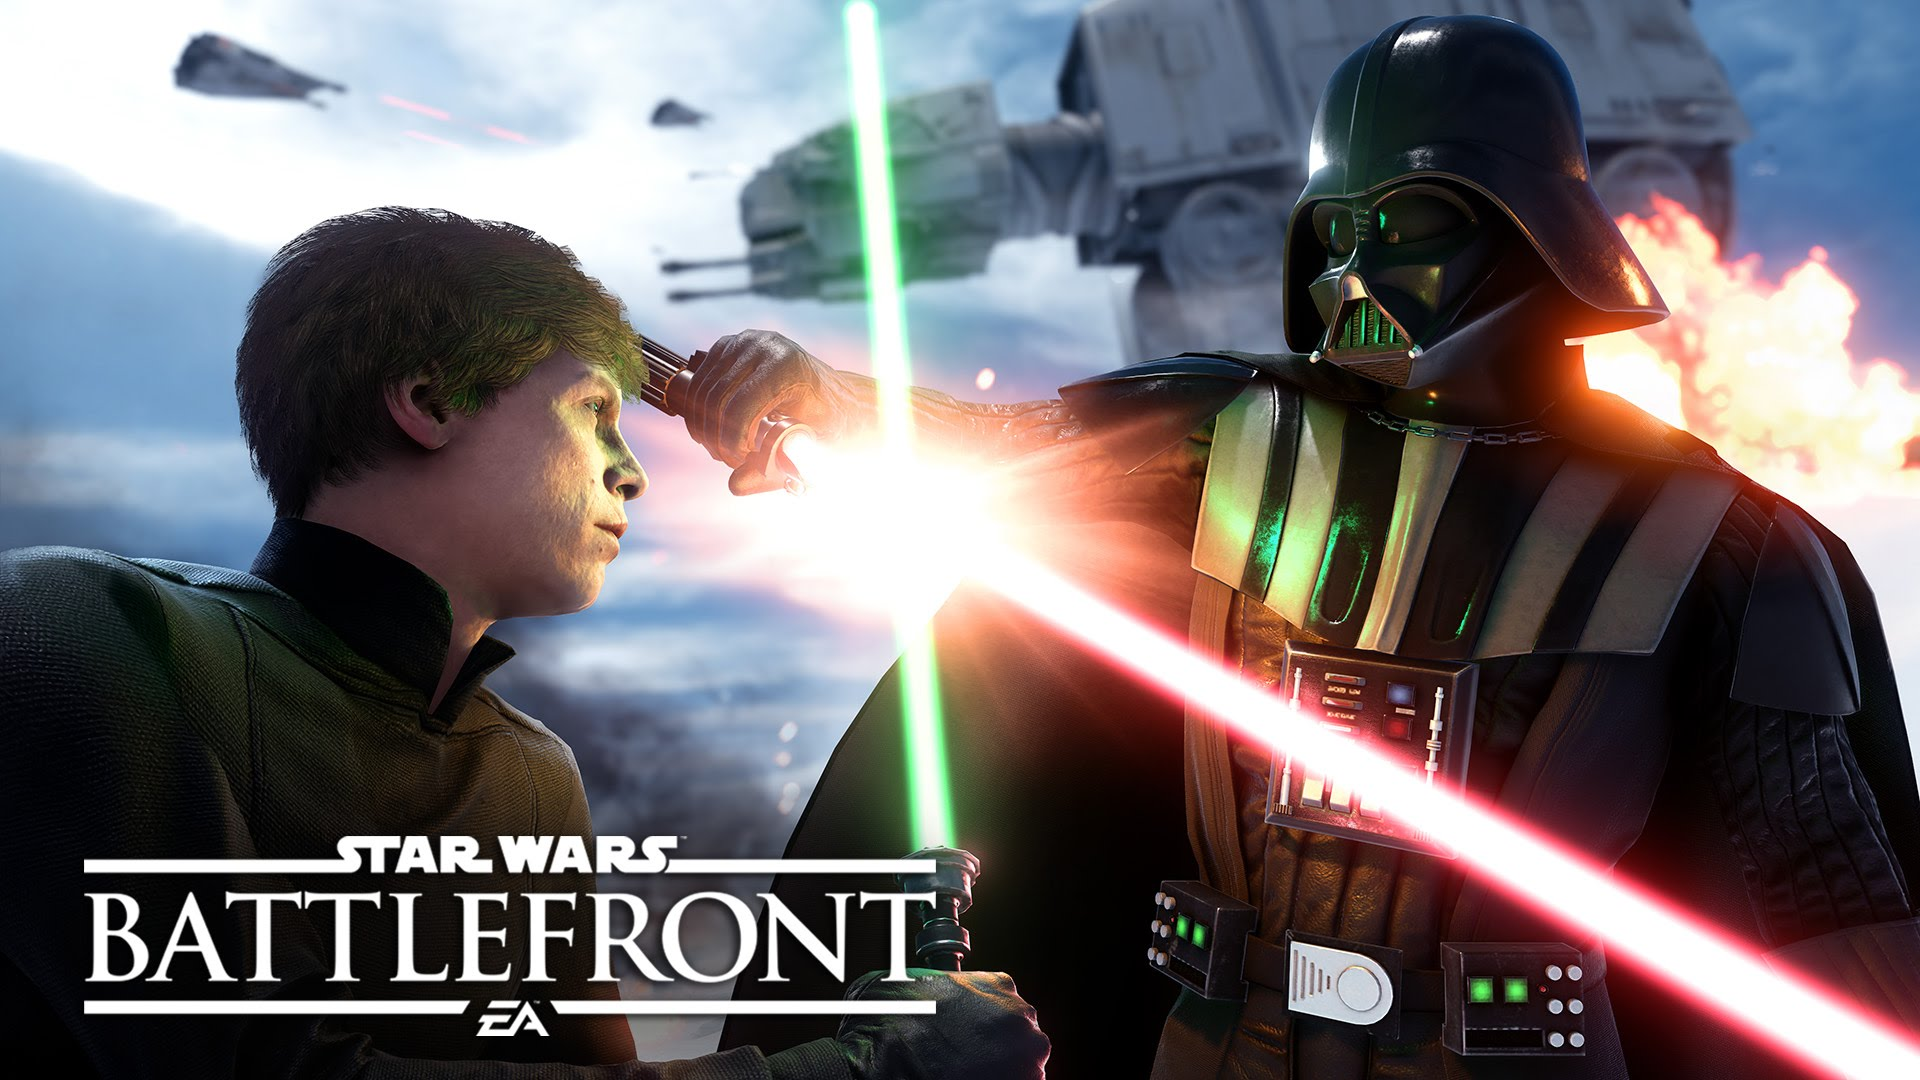 Star Wars Battlefront Hd Wallpaper Posted By Michelle Walker